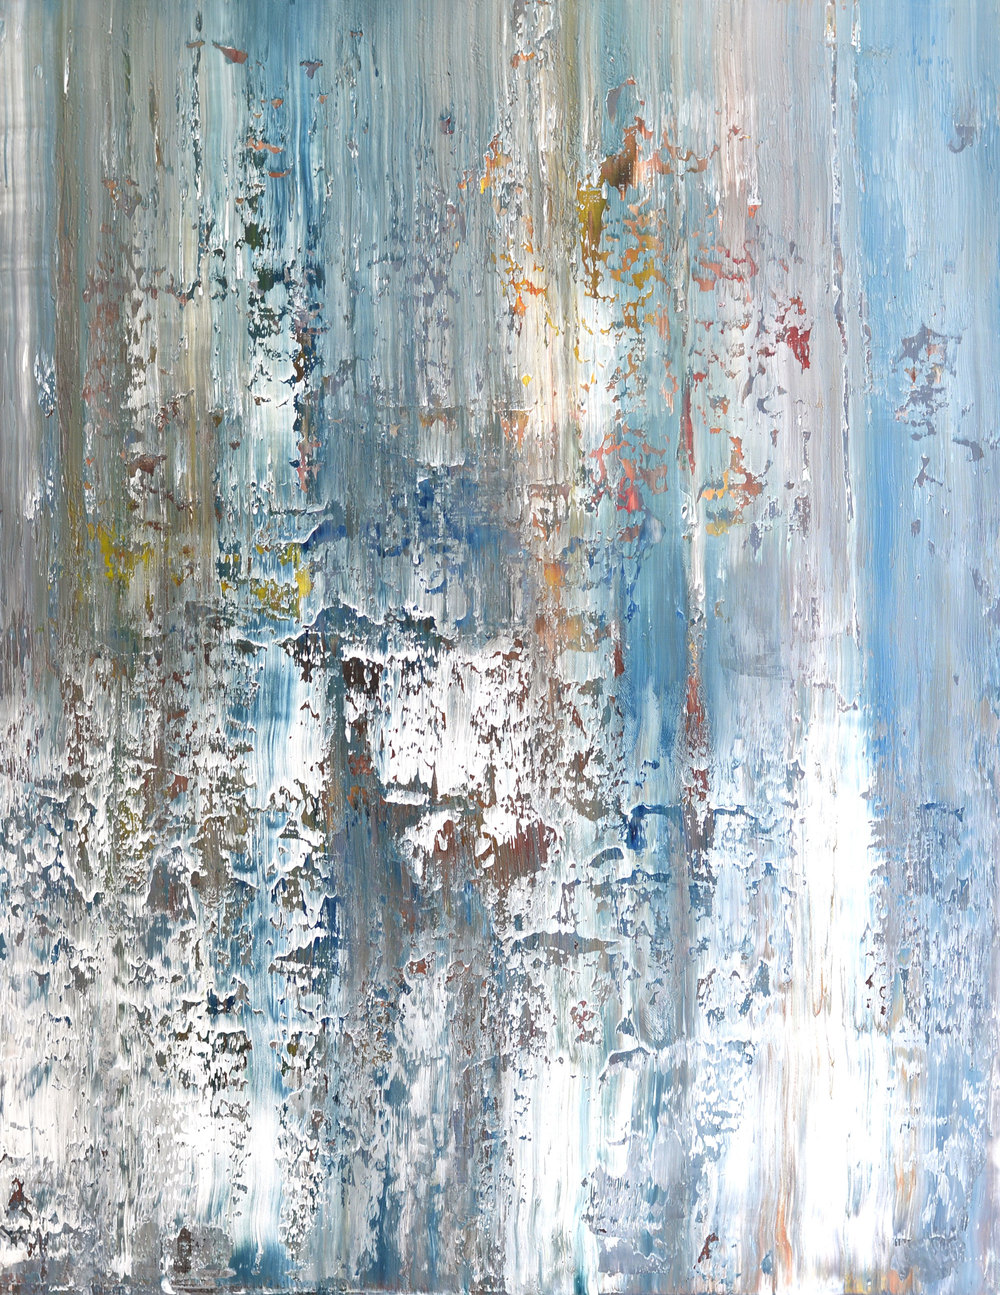 """Here & There"" is an original, abstract oil painting by Los Angeles based artist, Laura Viapiano."